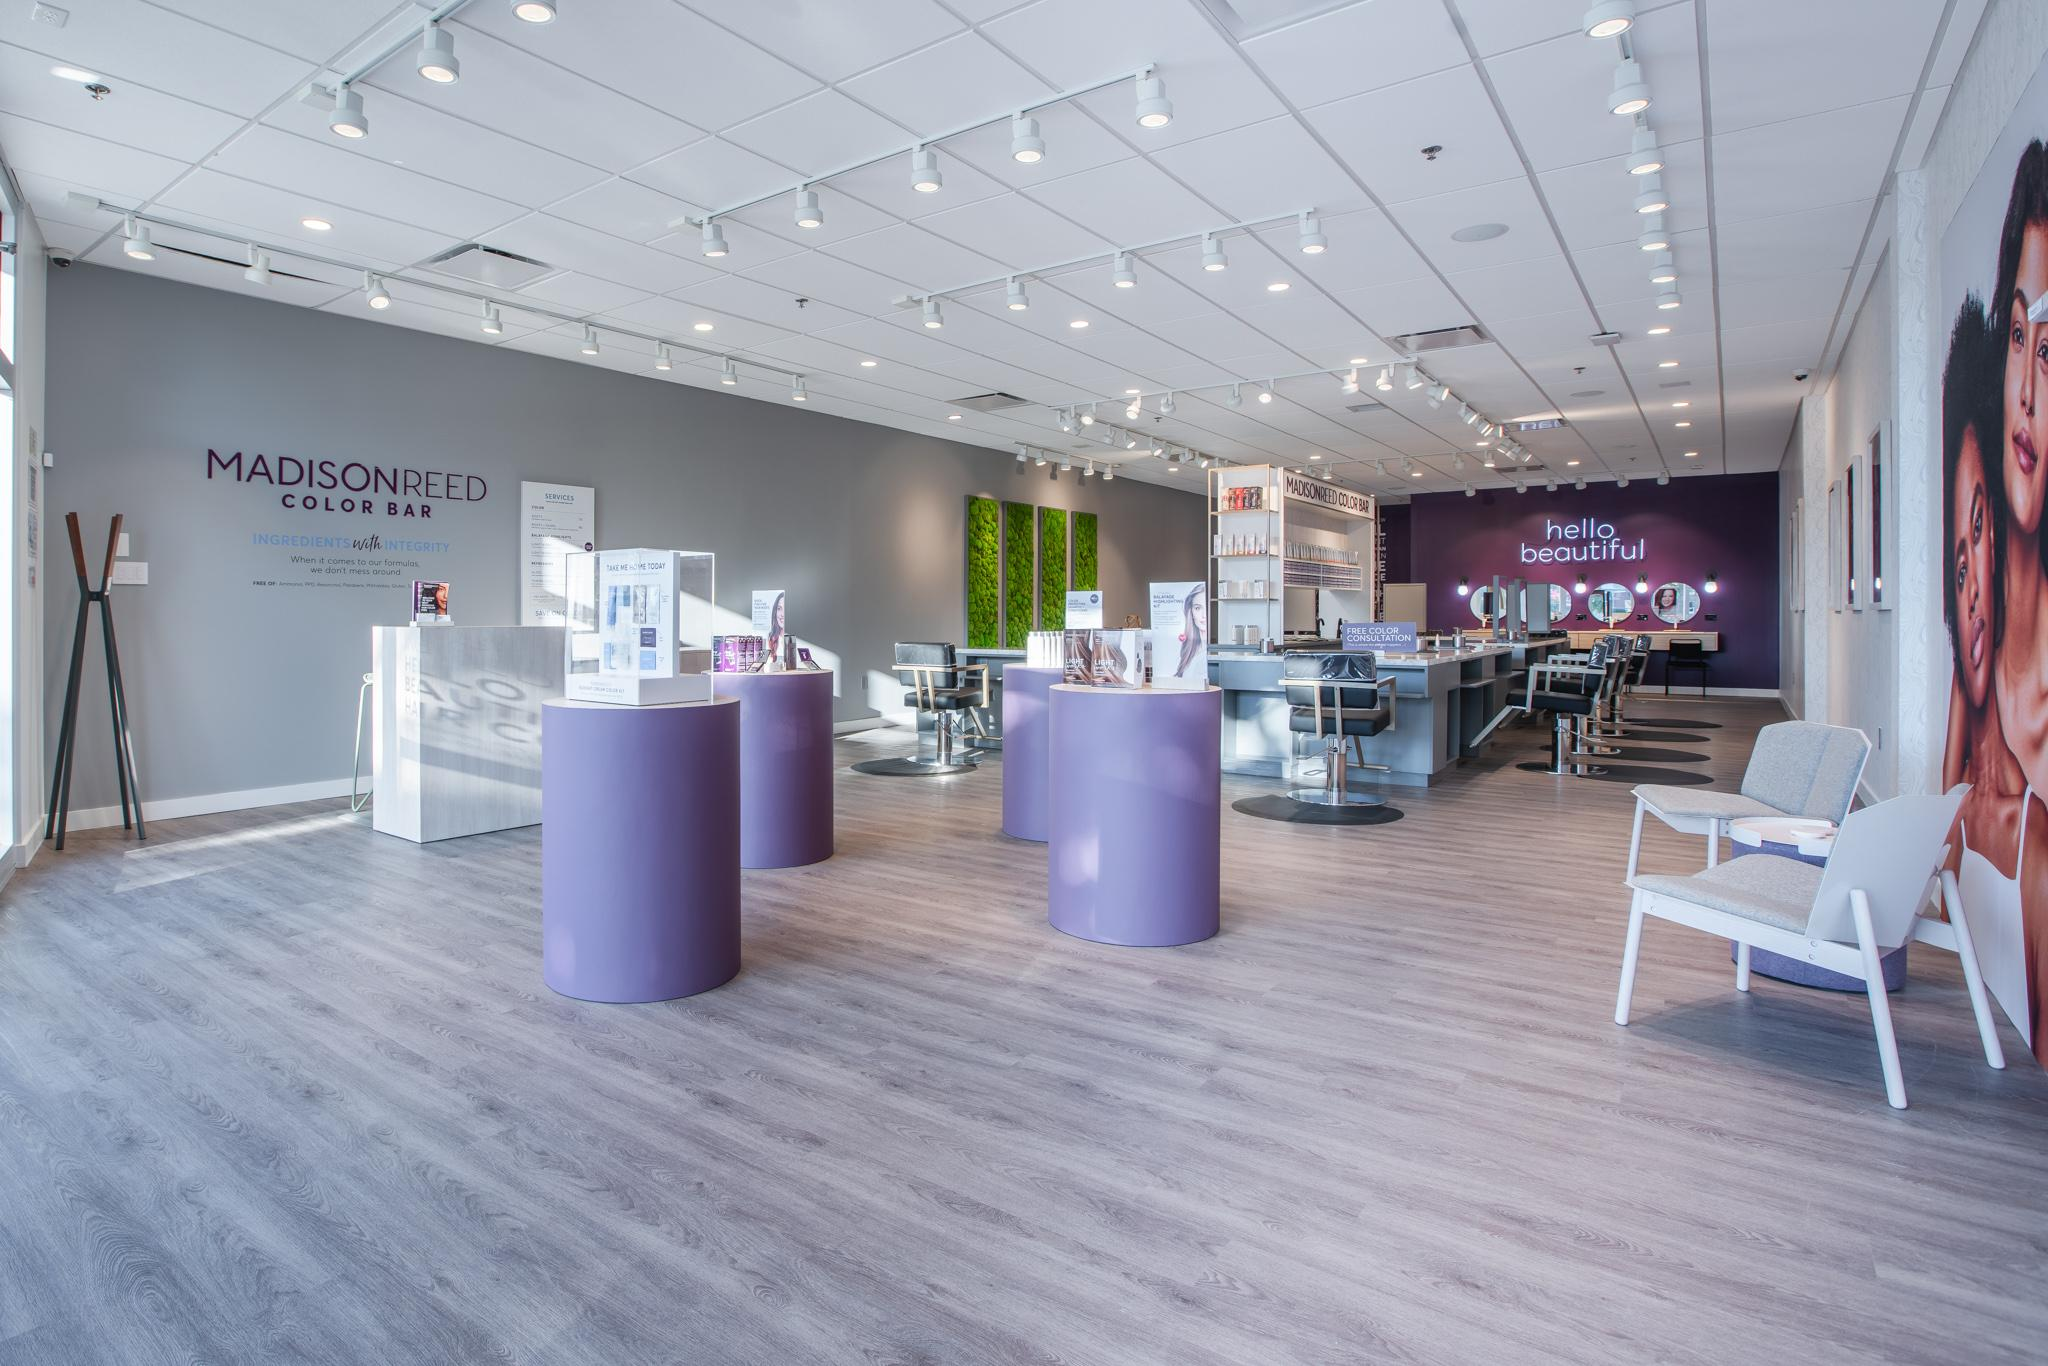 Retail and Lobby area of the Fort Worth Color Bar